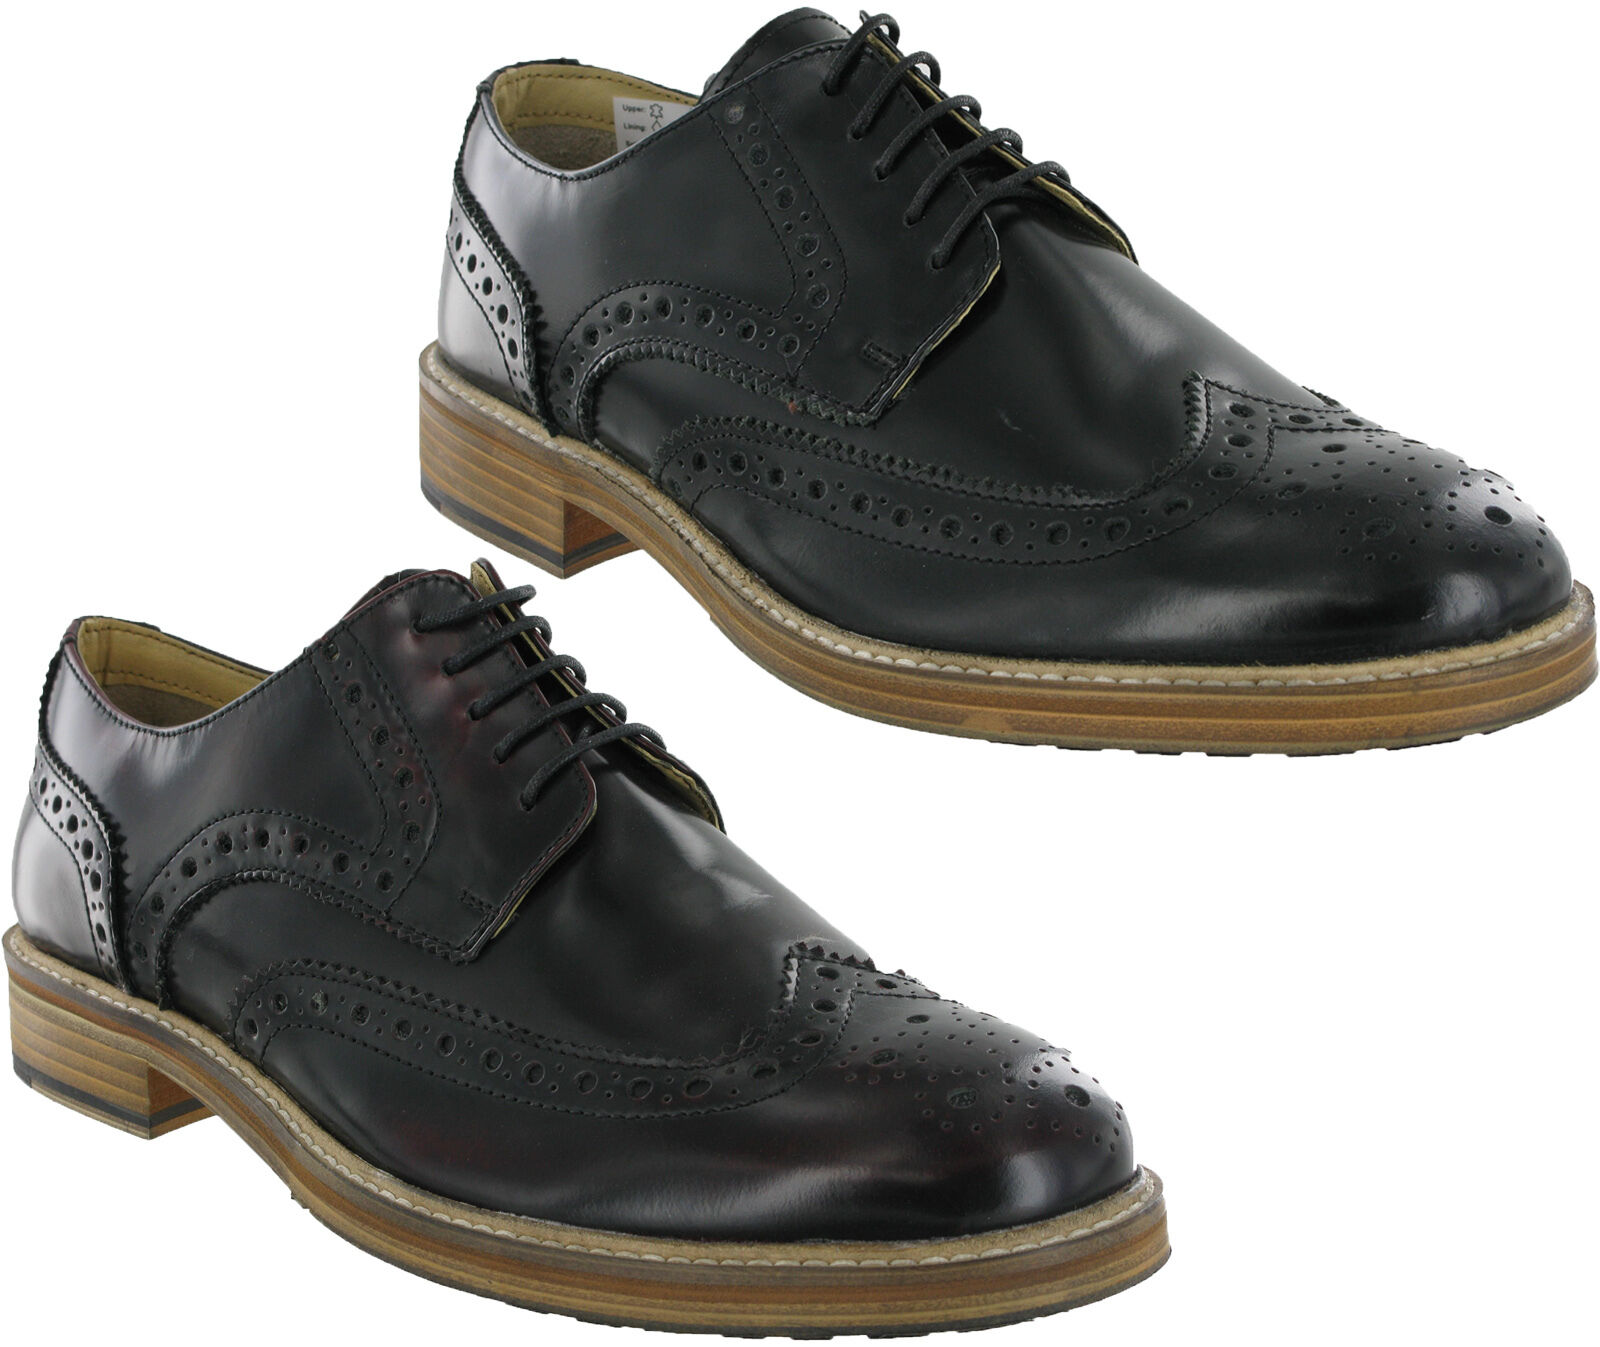 Roamers Wing Capped Uomo Brogue 5 Eyelet  Uomo Capped Leder Gibson Lace Up Schuhes UK6-12 52e1c3